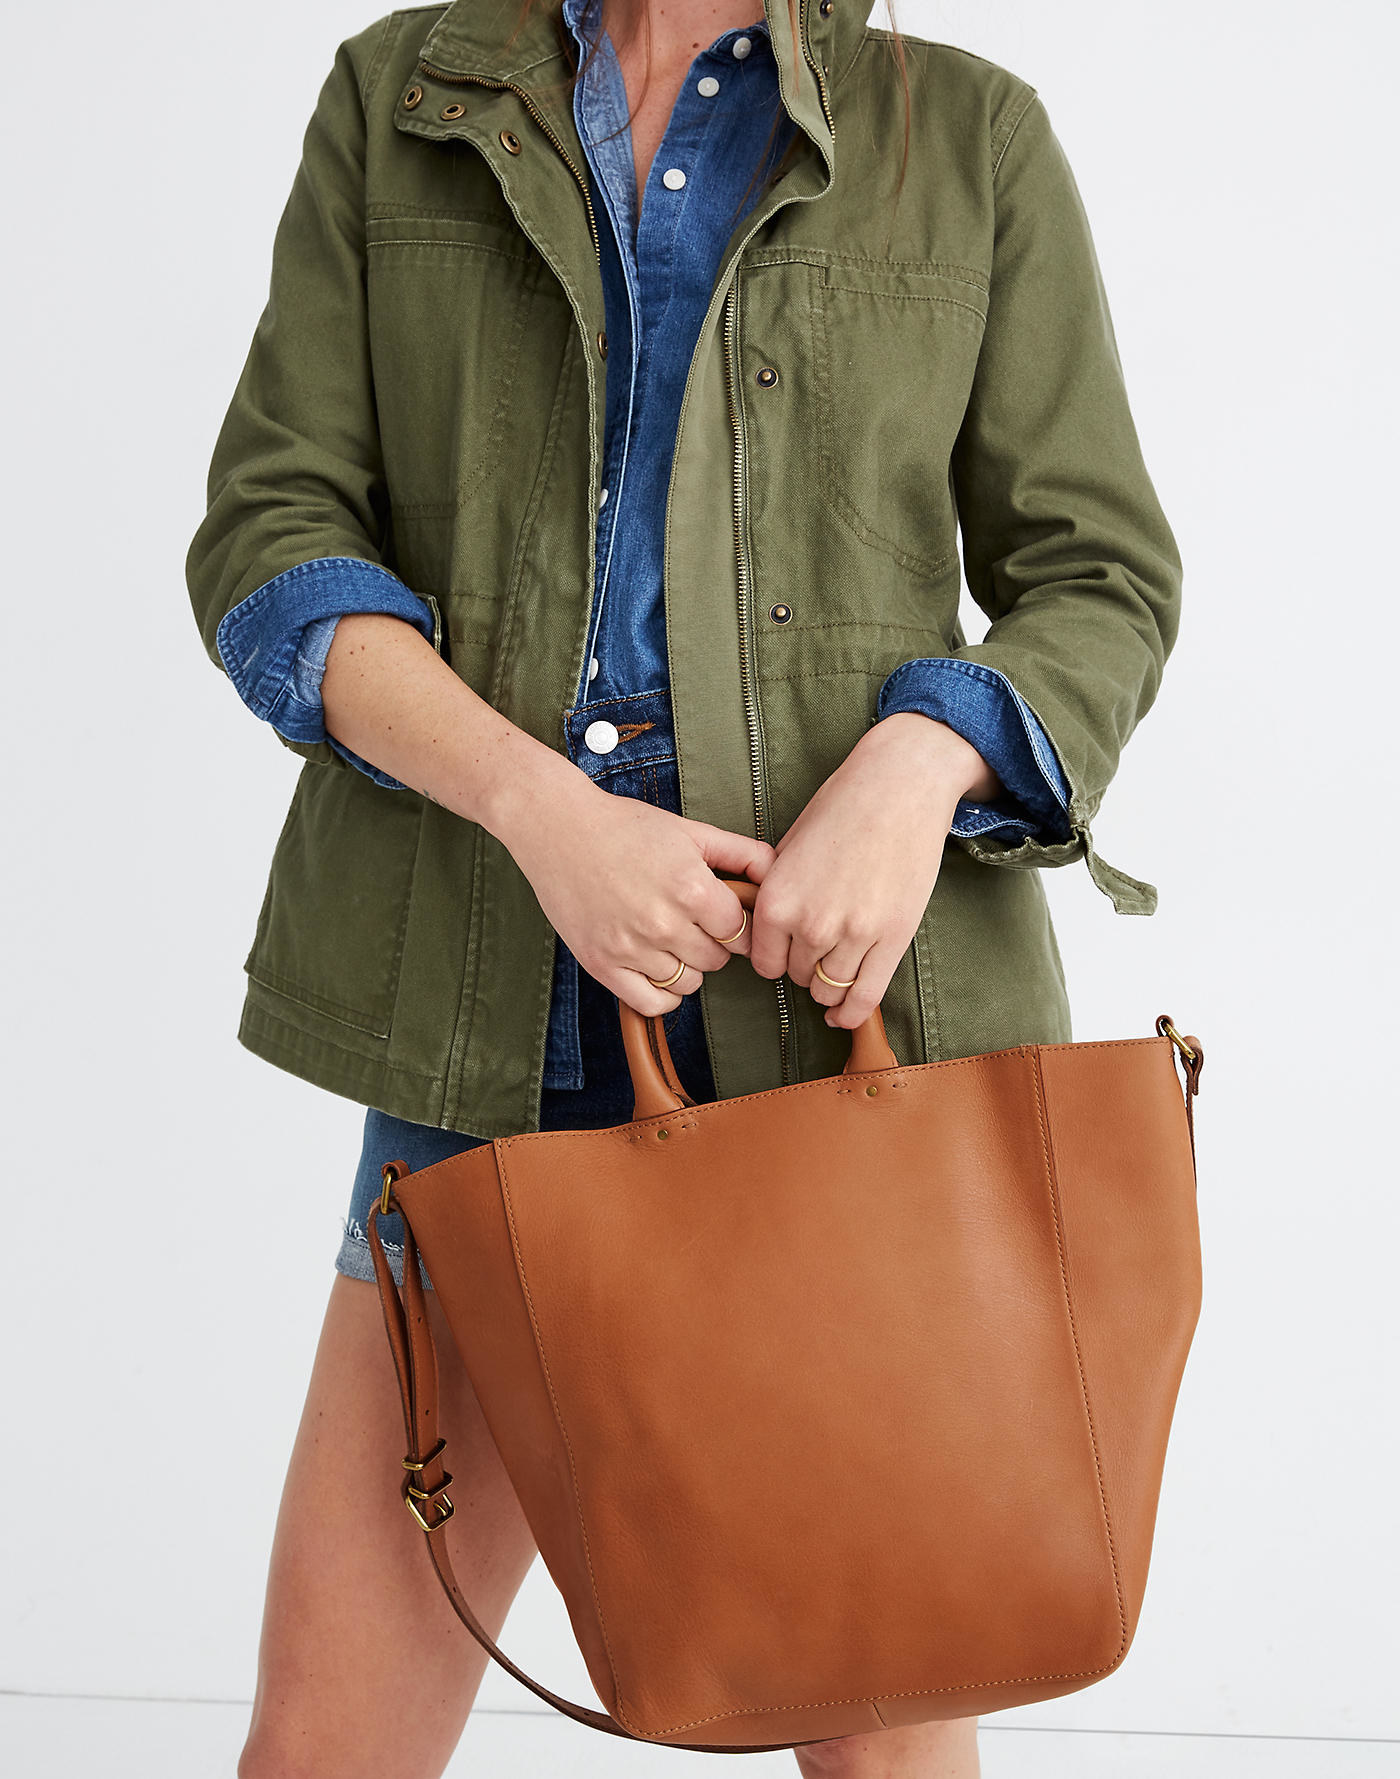 model wearing large camel colored tote bag